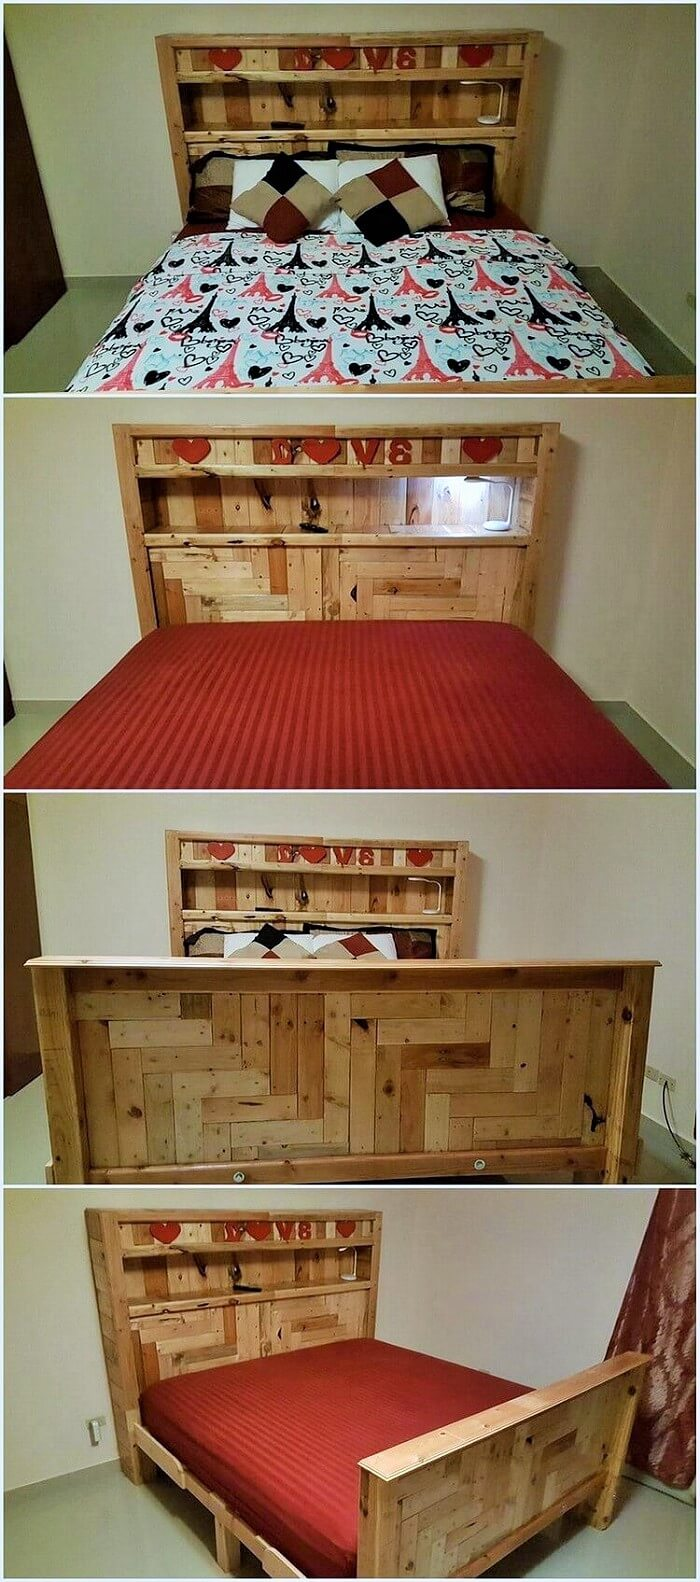 Wood-Pallet-Bed-with-Stylish-Headboard (2)